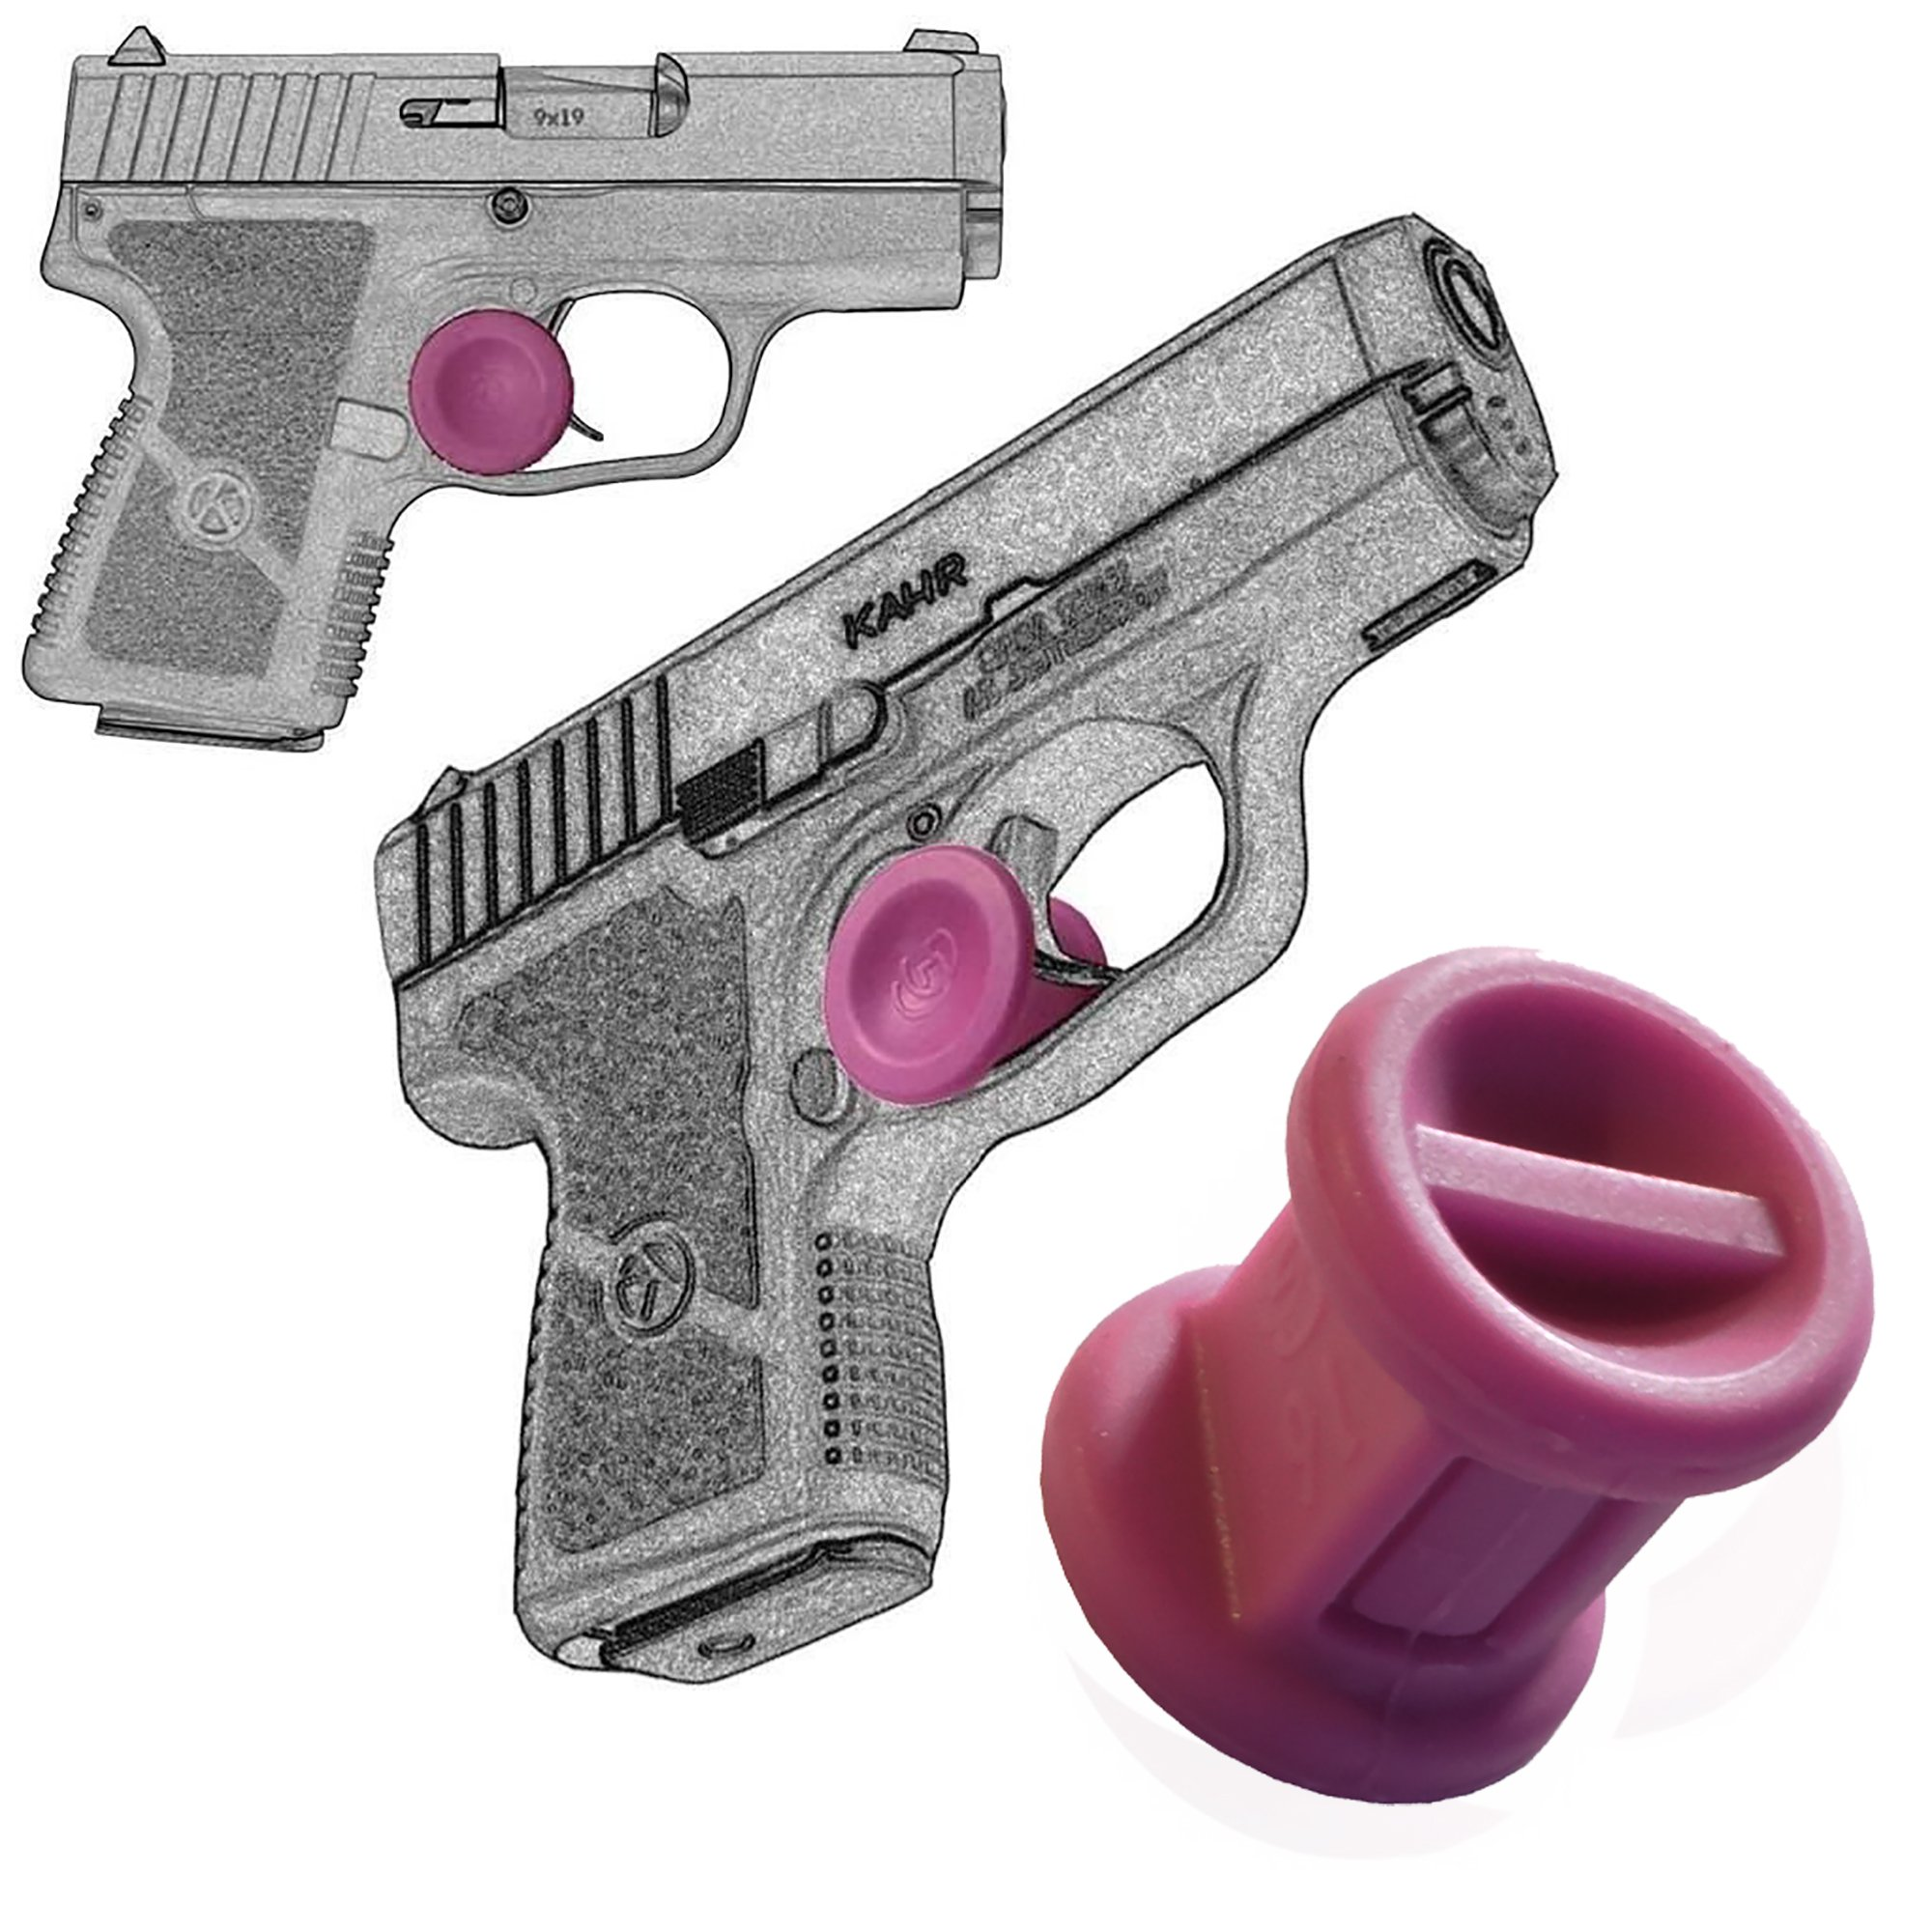 Garrison Grip TWO Micro Trigger Stop Holsters Kahr CW9 9mm & All Kahr Models s18 Pink